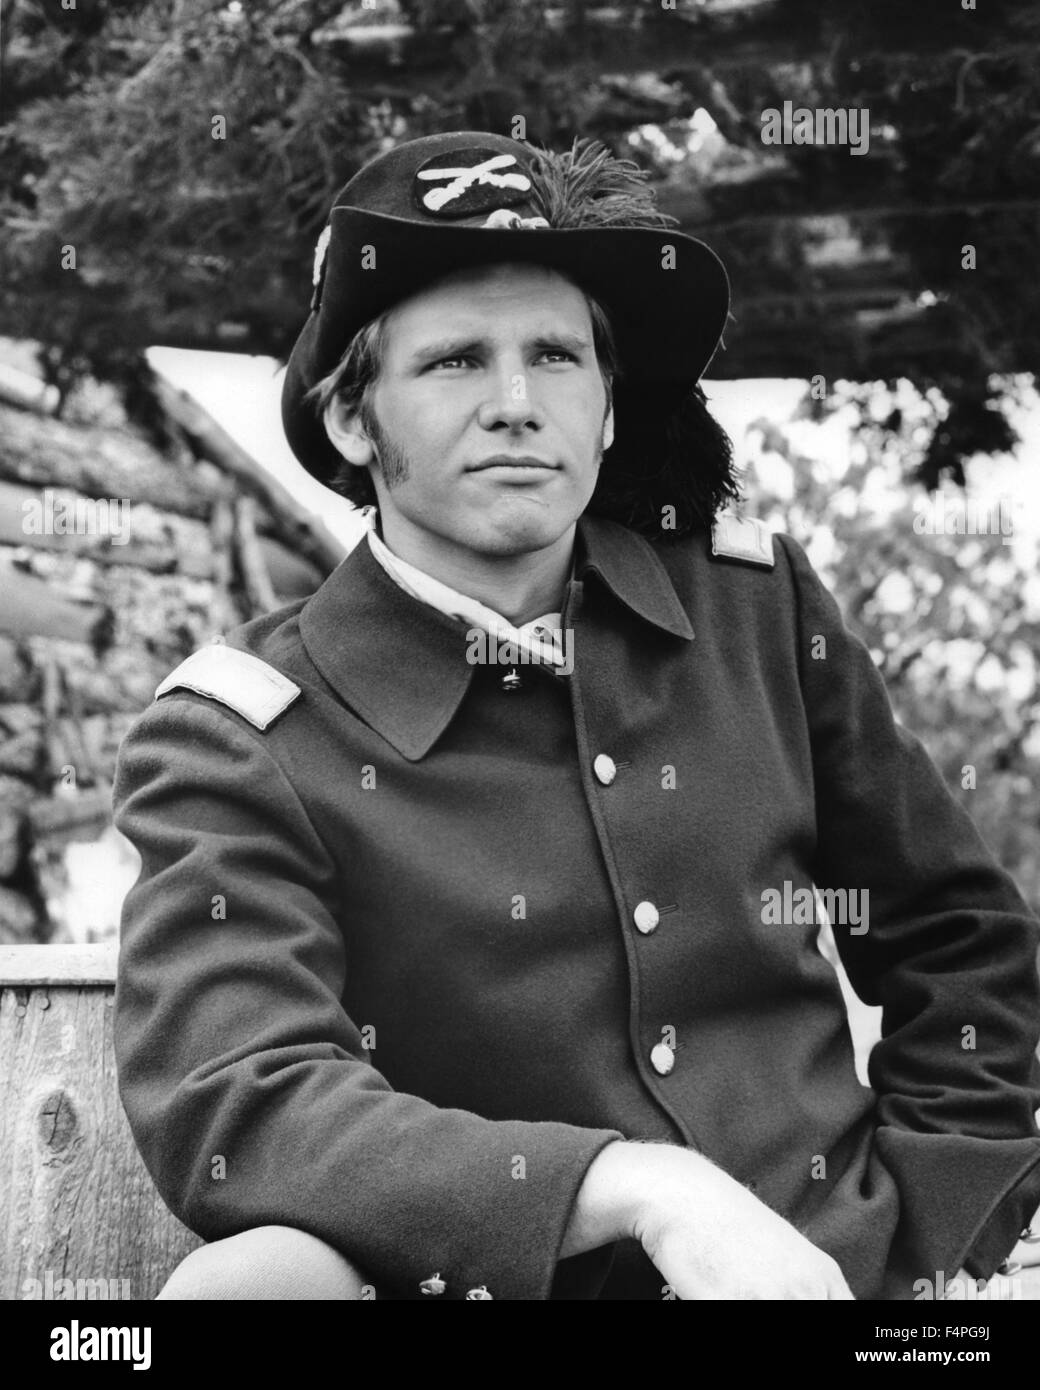 Harrison ford a time for killing 1967 directed by phil karlson stock image